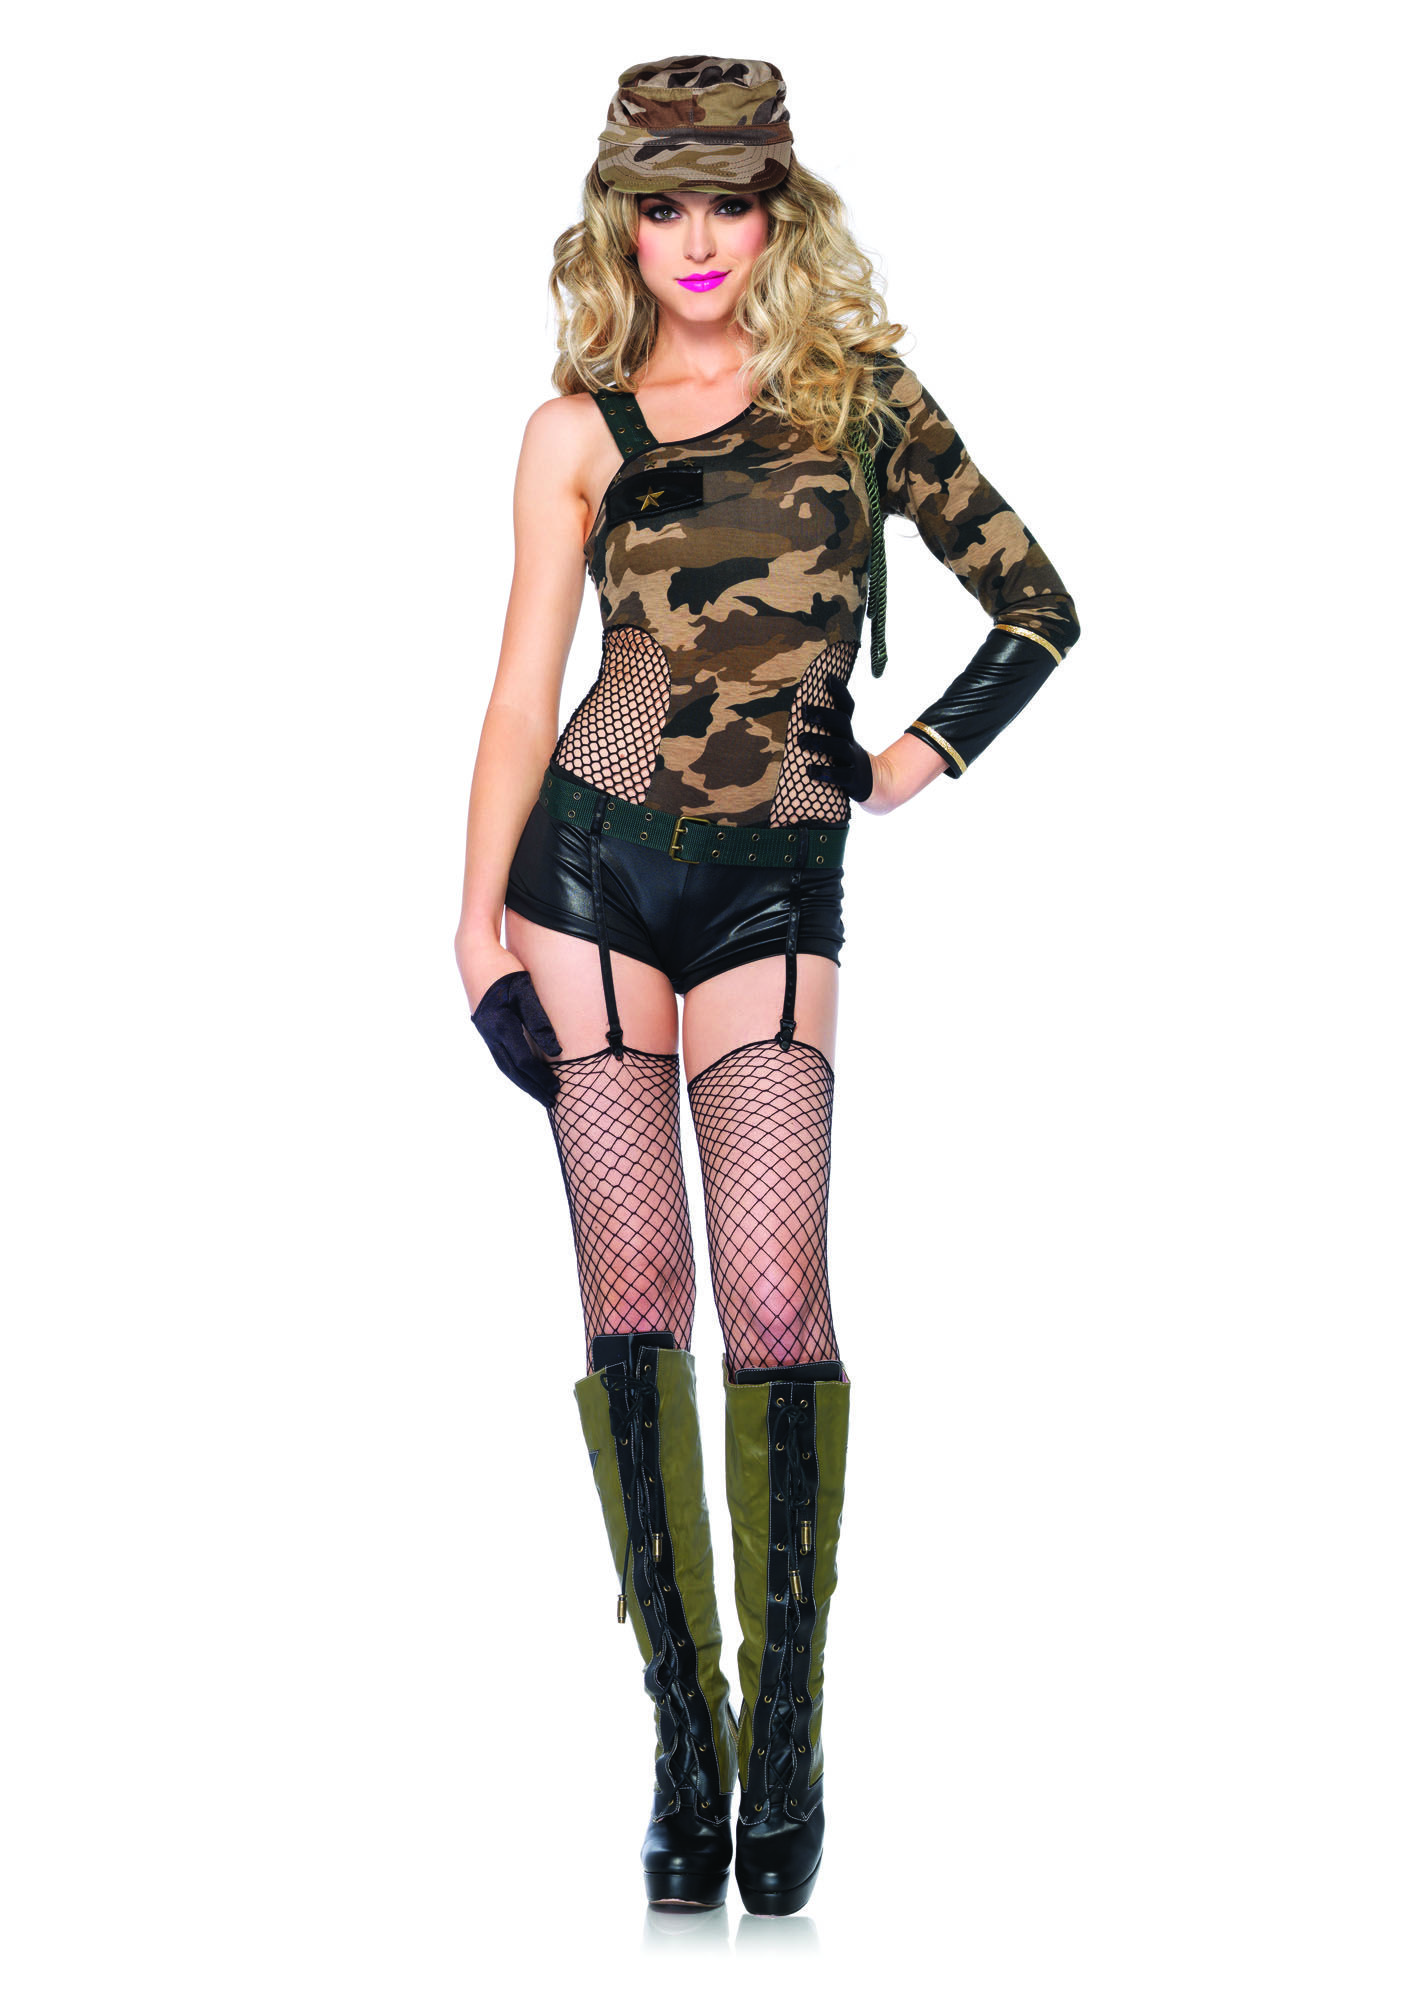 Youu0027re fierce fashionable and ready for action in our Camo Doll Army Costume! This Camo Doll Army Costume for women features a camo romper matching hat ...  sc 1 st  Pinterest & Camo Doll Army Costume | Womenu0027s Costumes | Pinterest | Army costume ...